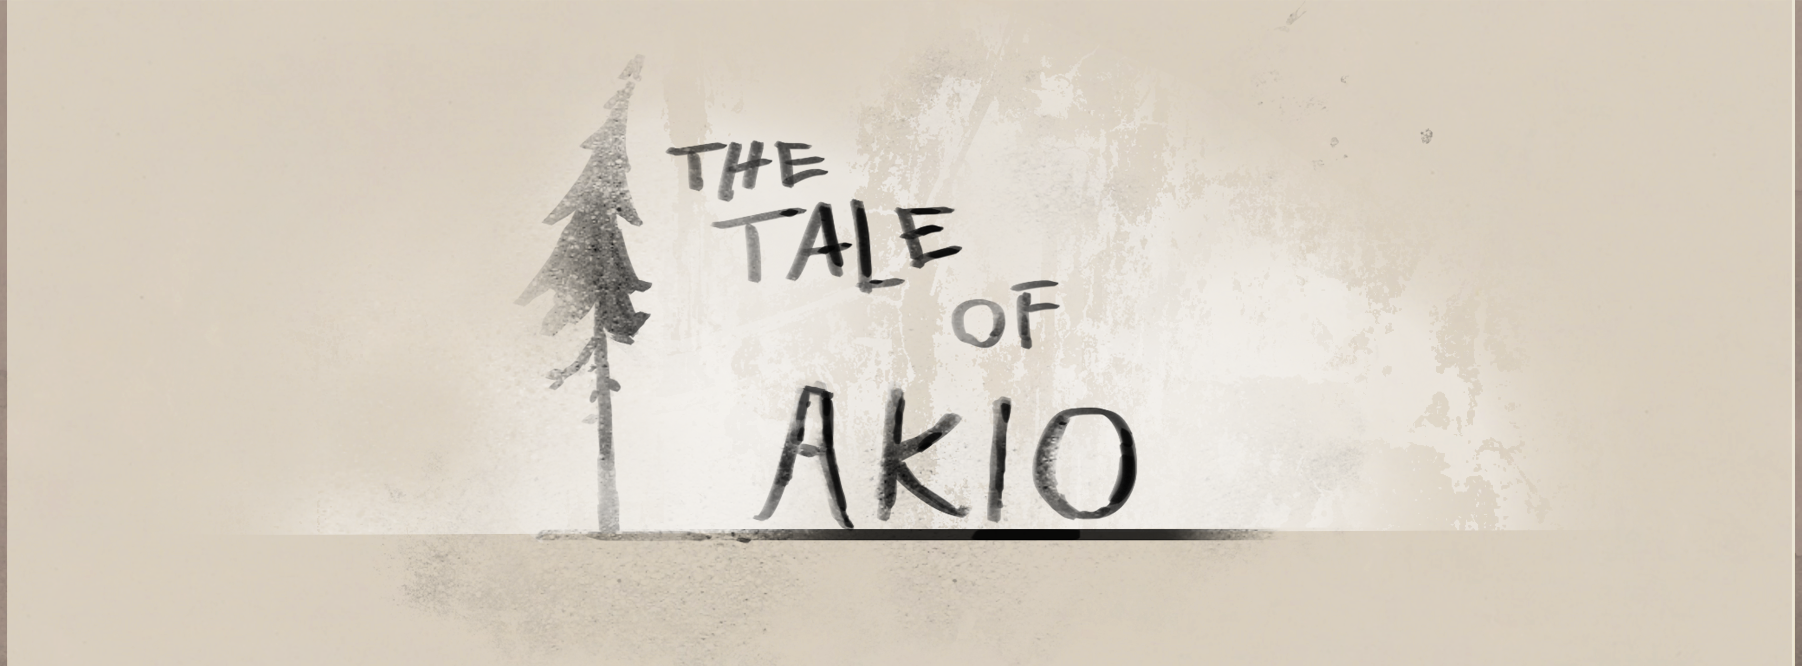 The Tale of Akio